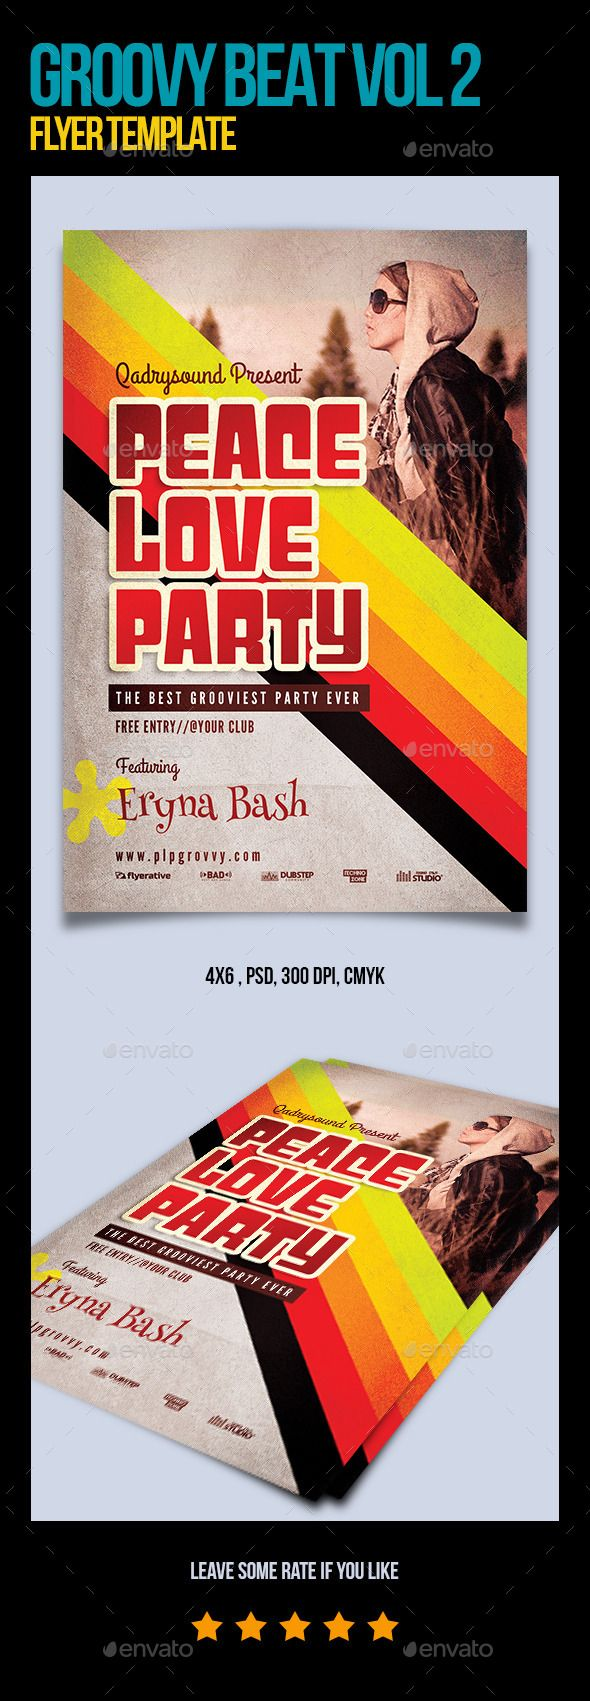 Best Typography Flyer Template Images On   Flyer